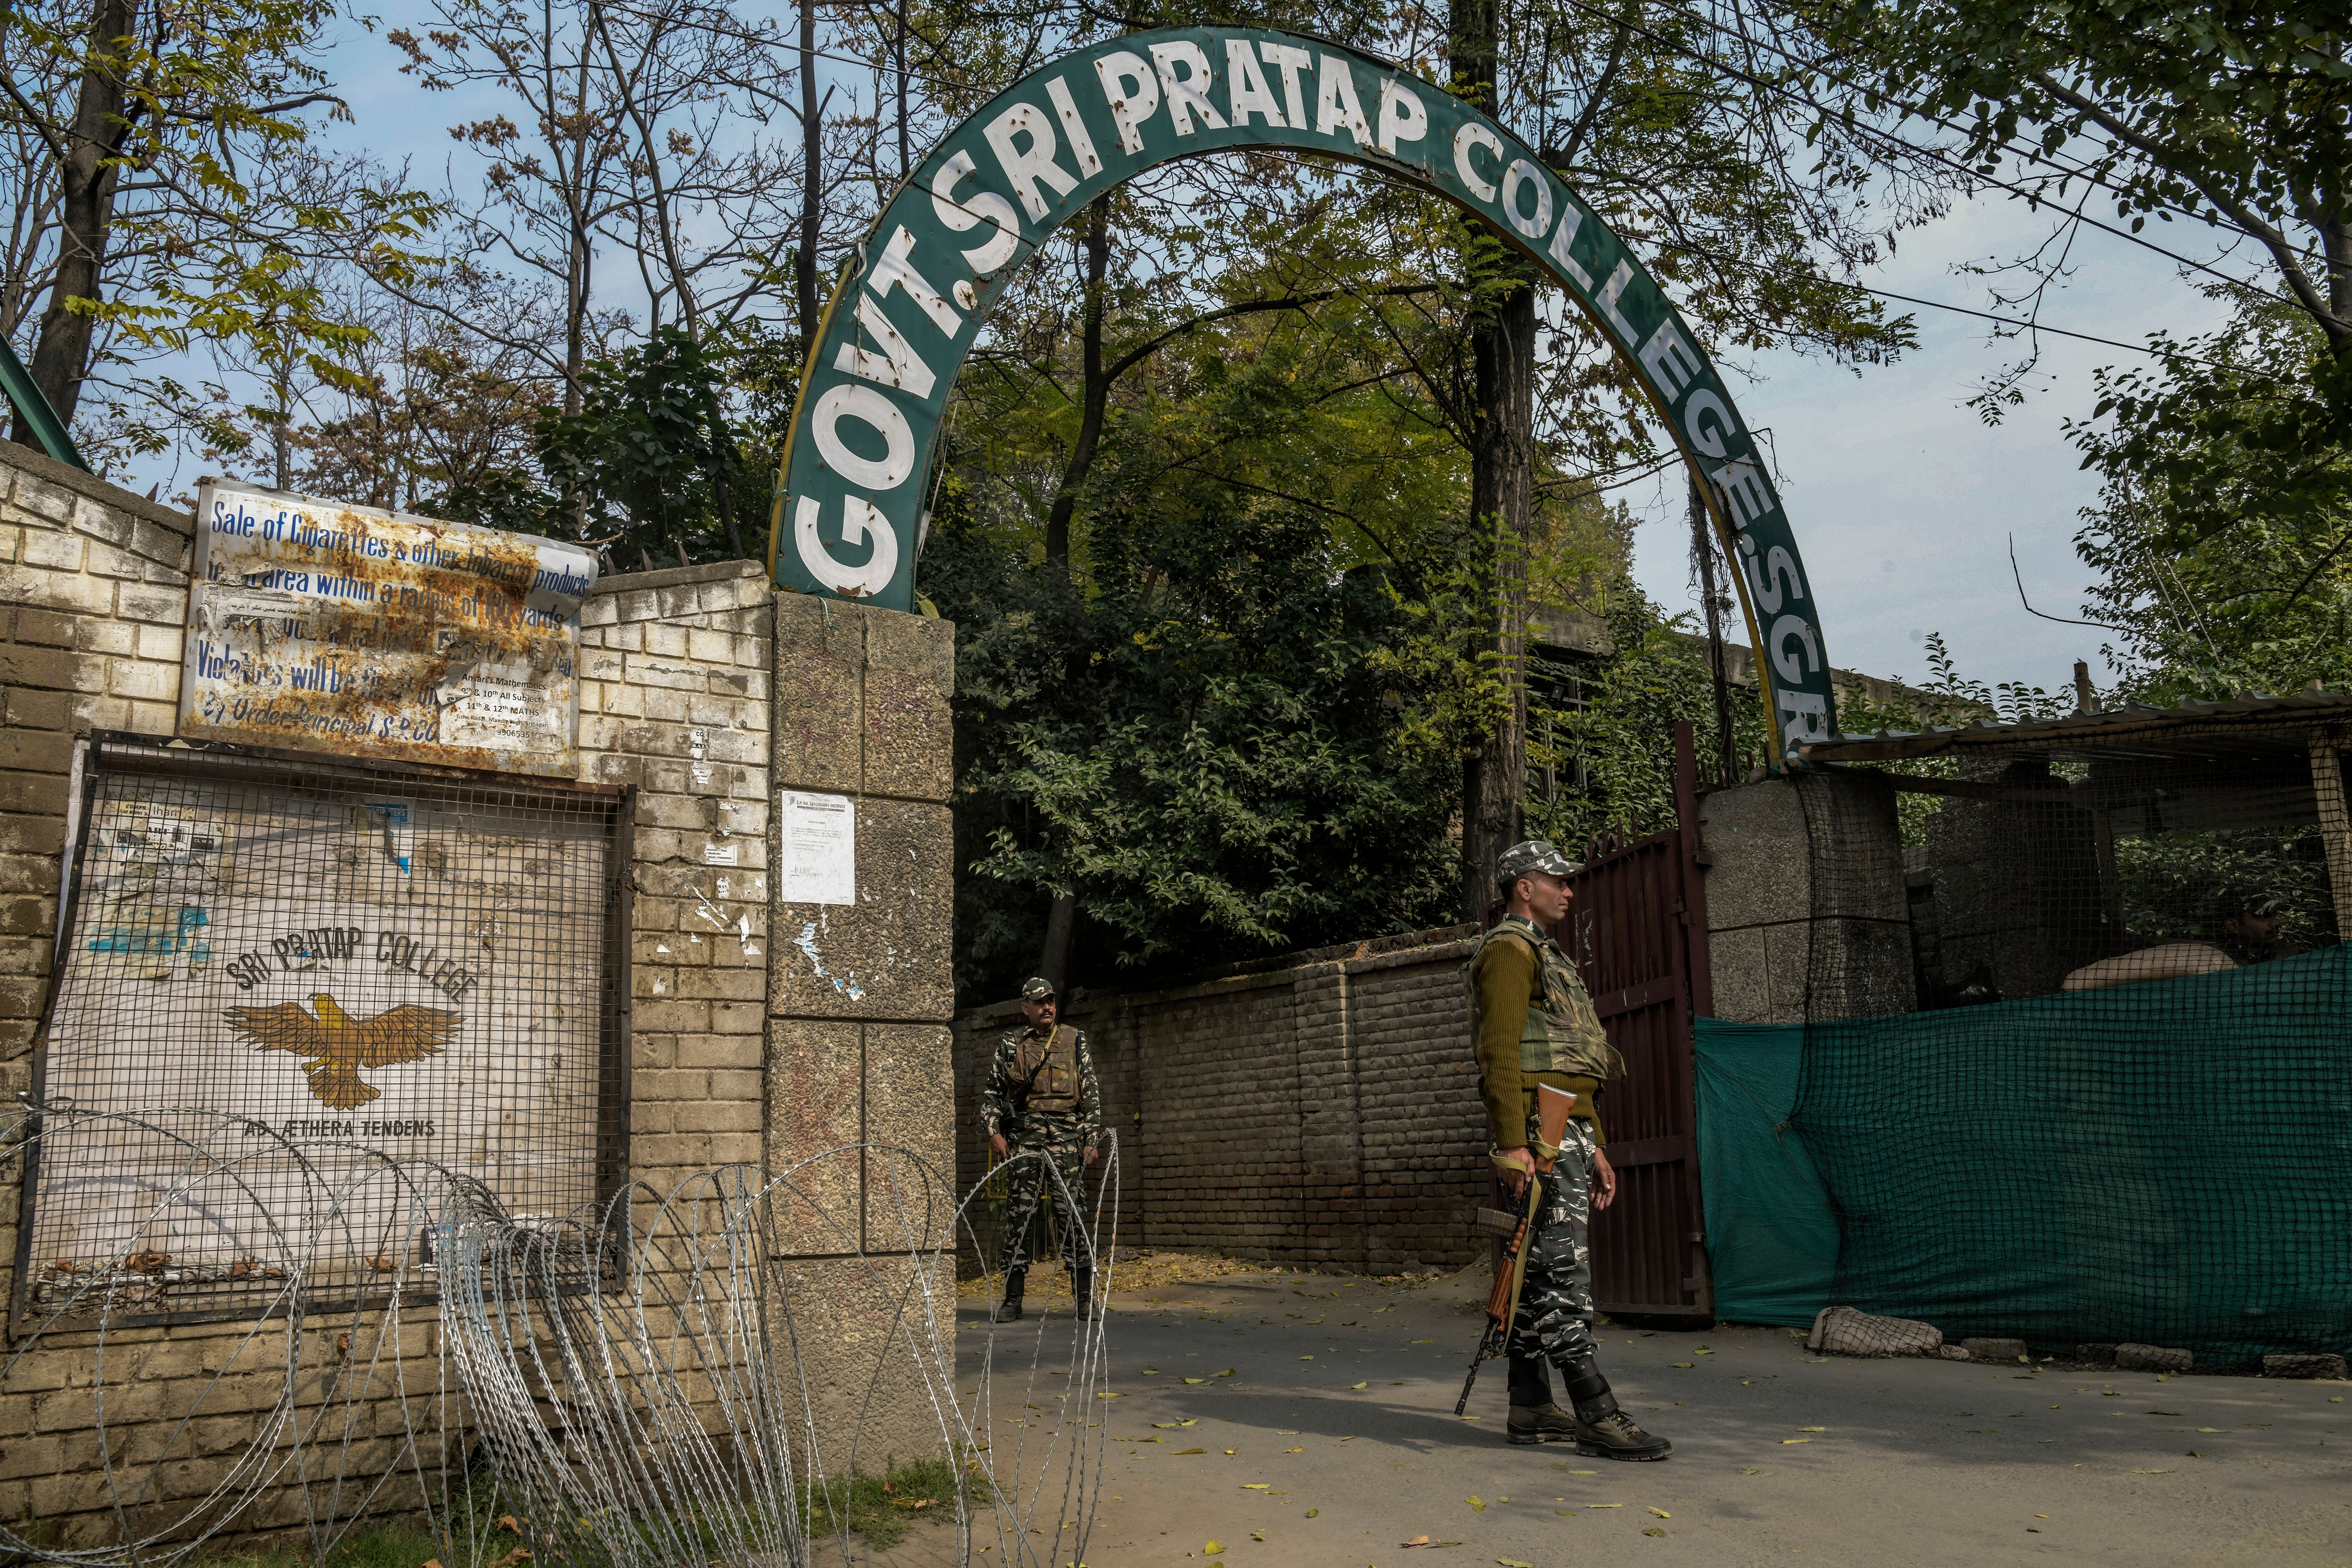 Security forces outside Sri Pratap College in Srinagar, India.